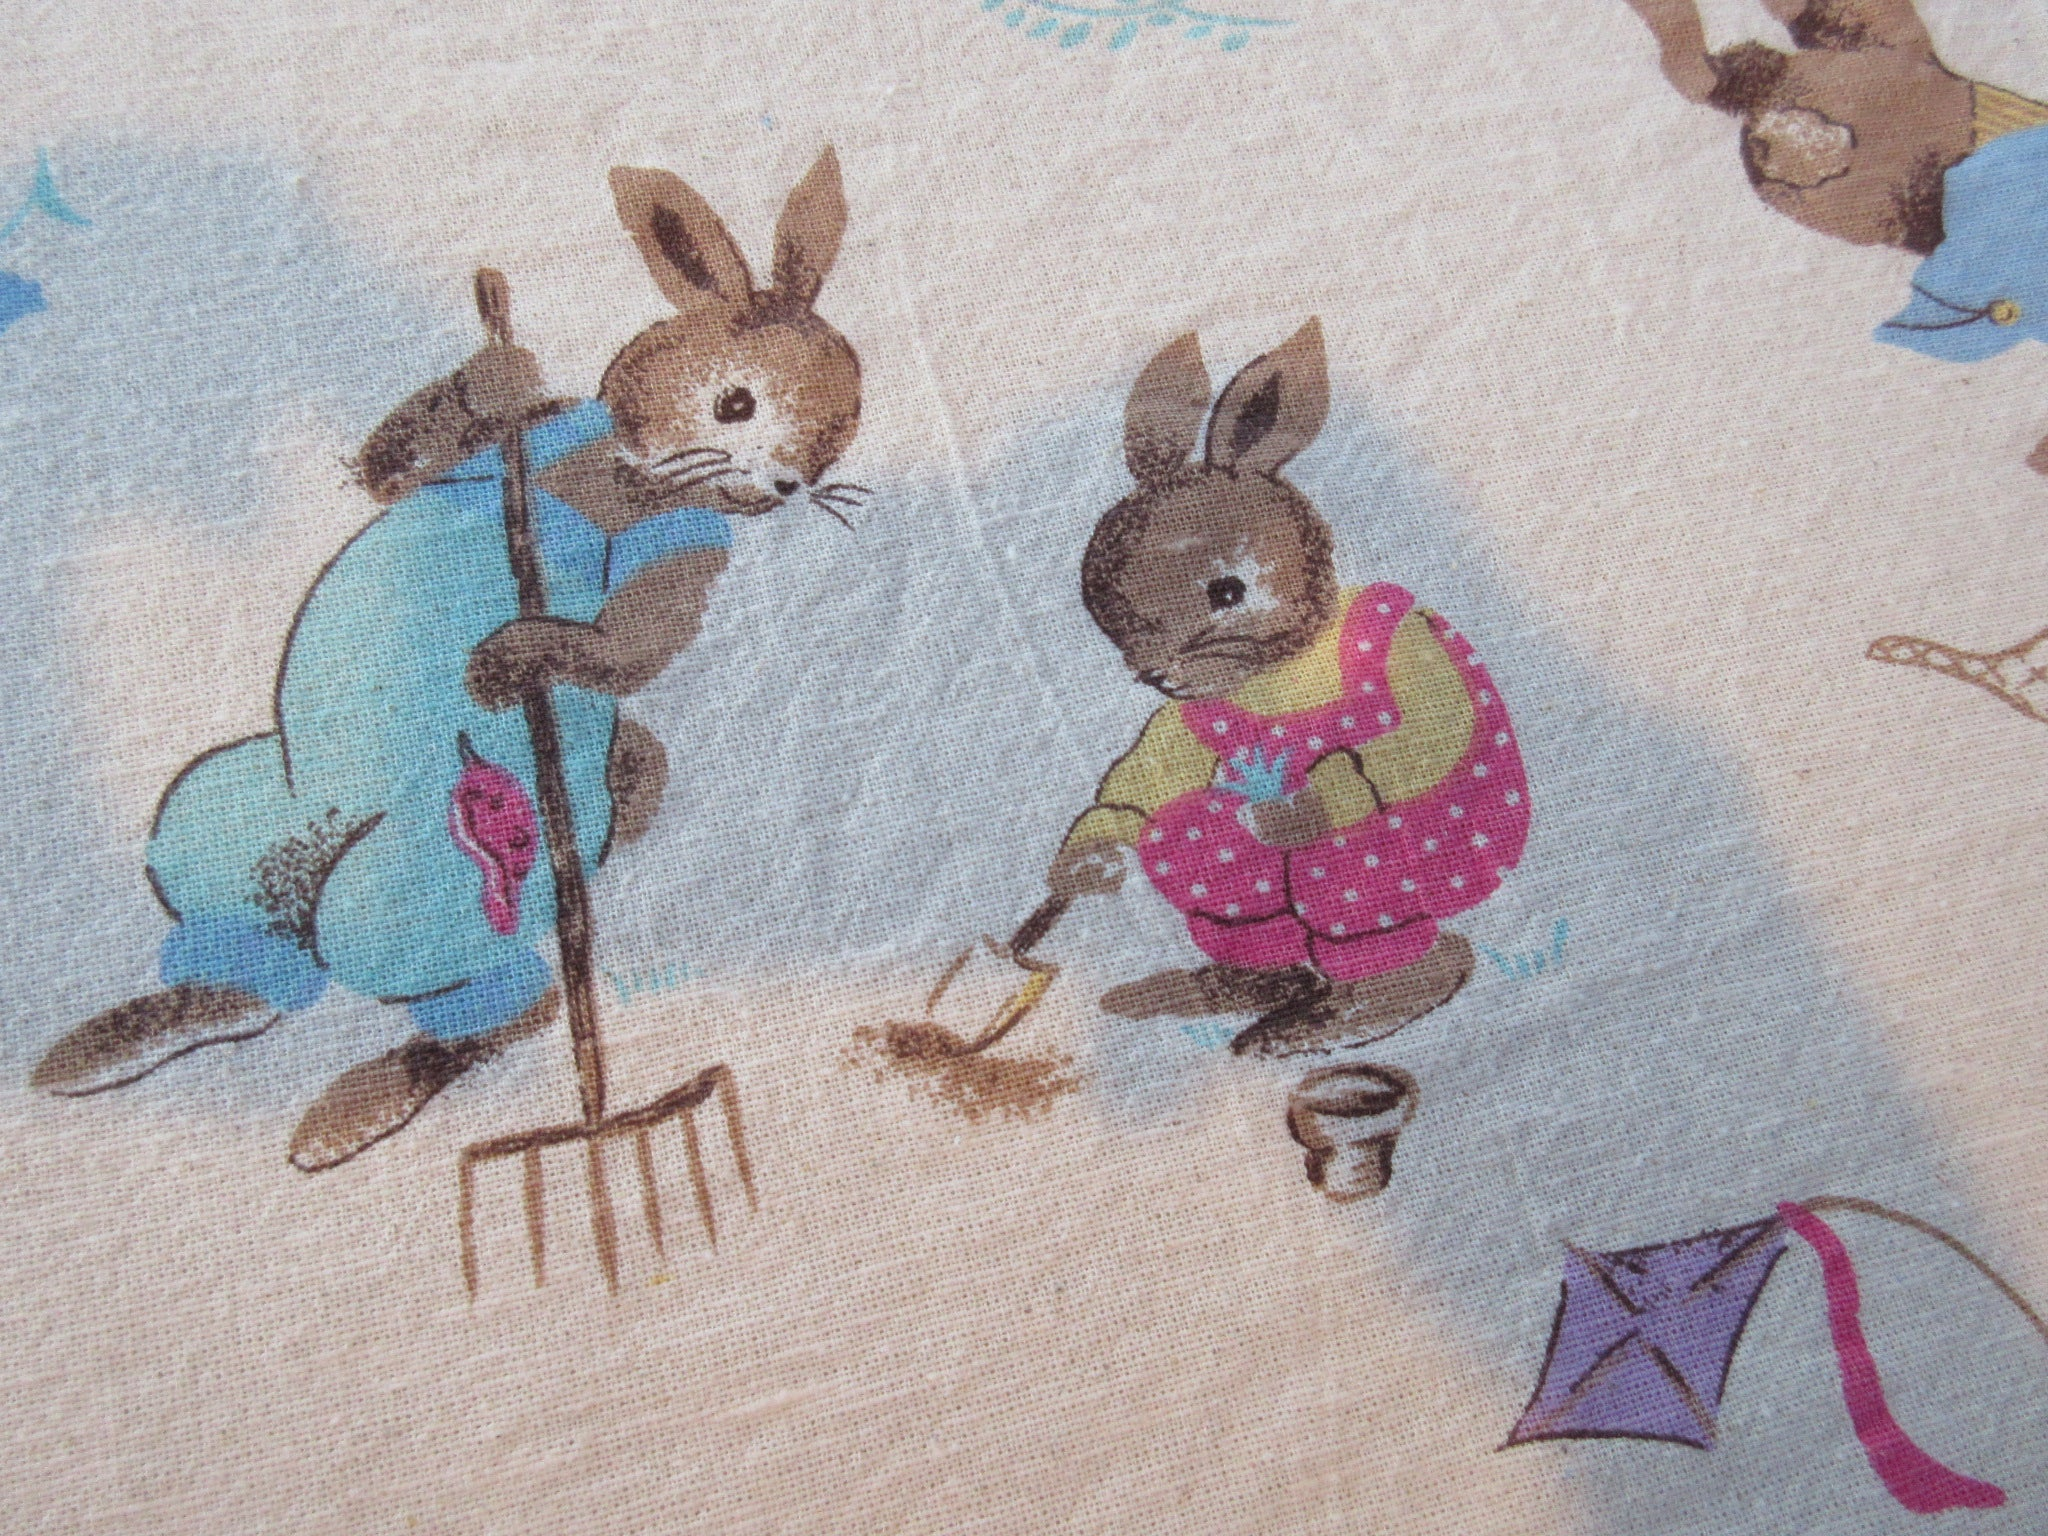 Rectangle Avon Easter Bunny Rabbit Novelty Vintage STYLE Printed Tablecloth (77 X 58)